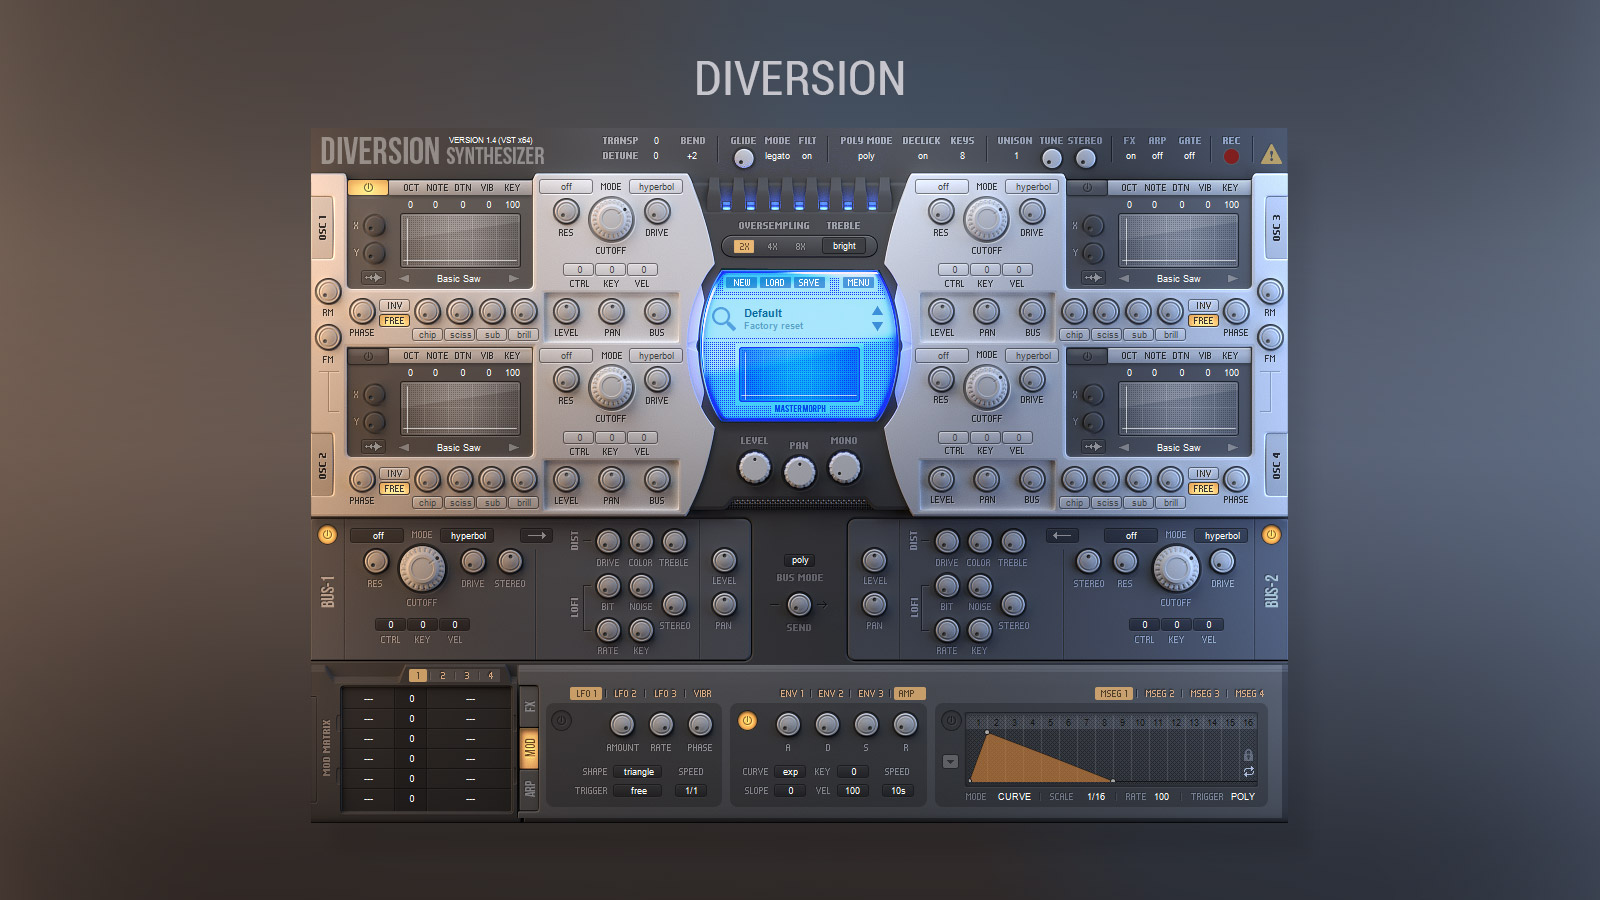 Dmitry Sches - Diversion v1.41 скачать VSTi-синтезатор